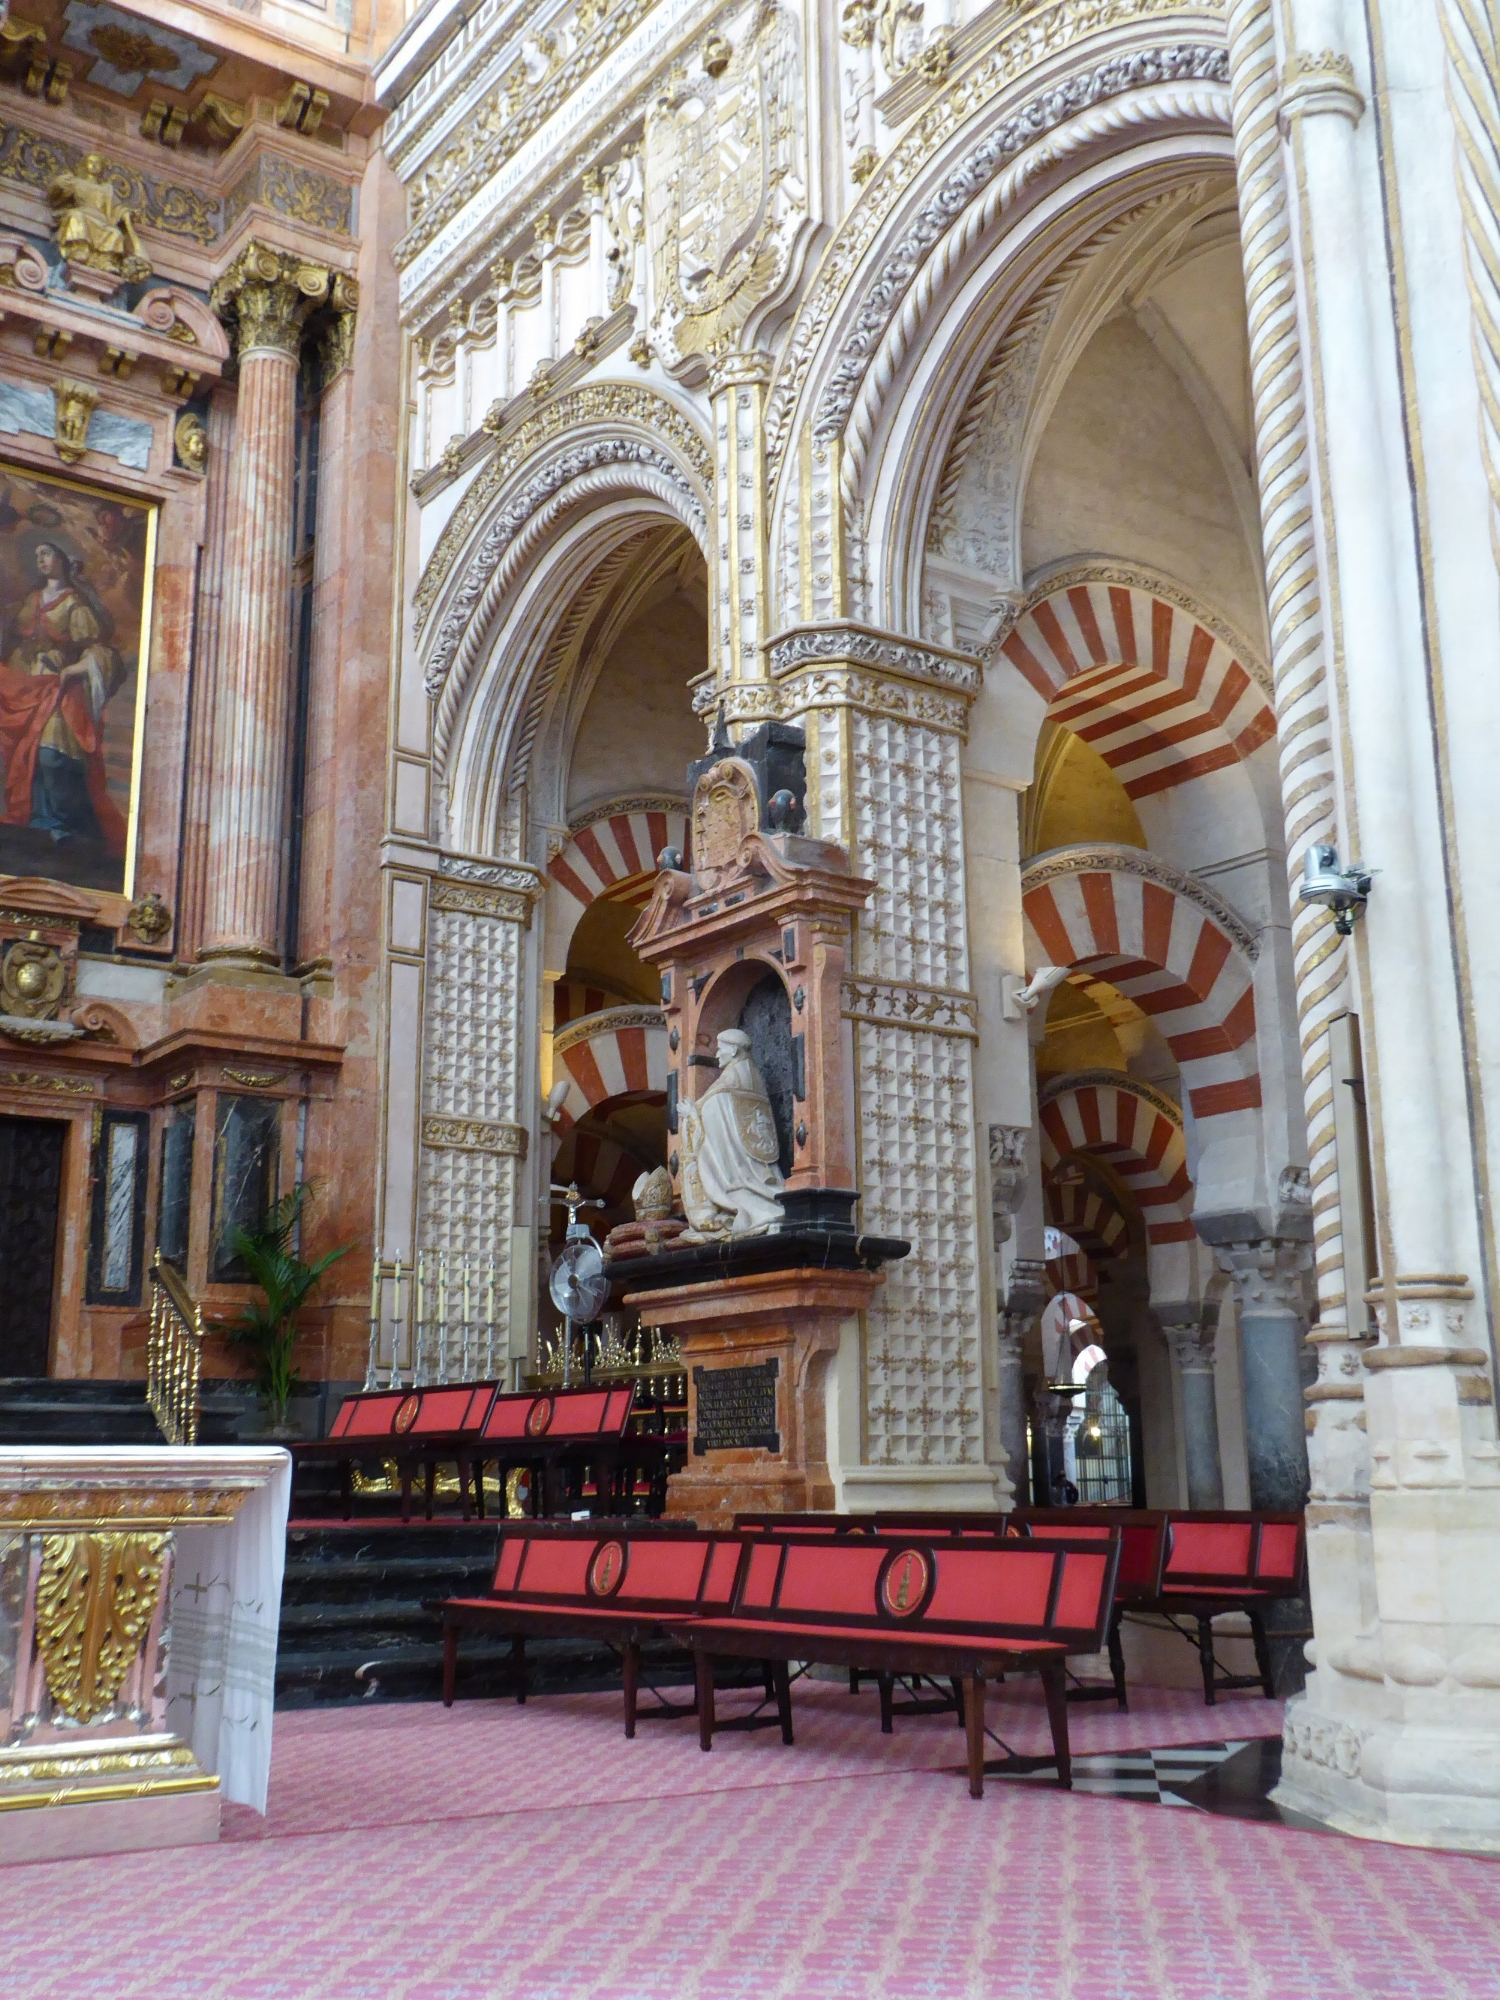 Contrast of the Moorish and Christian influences